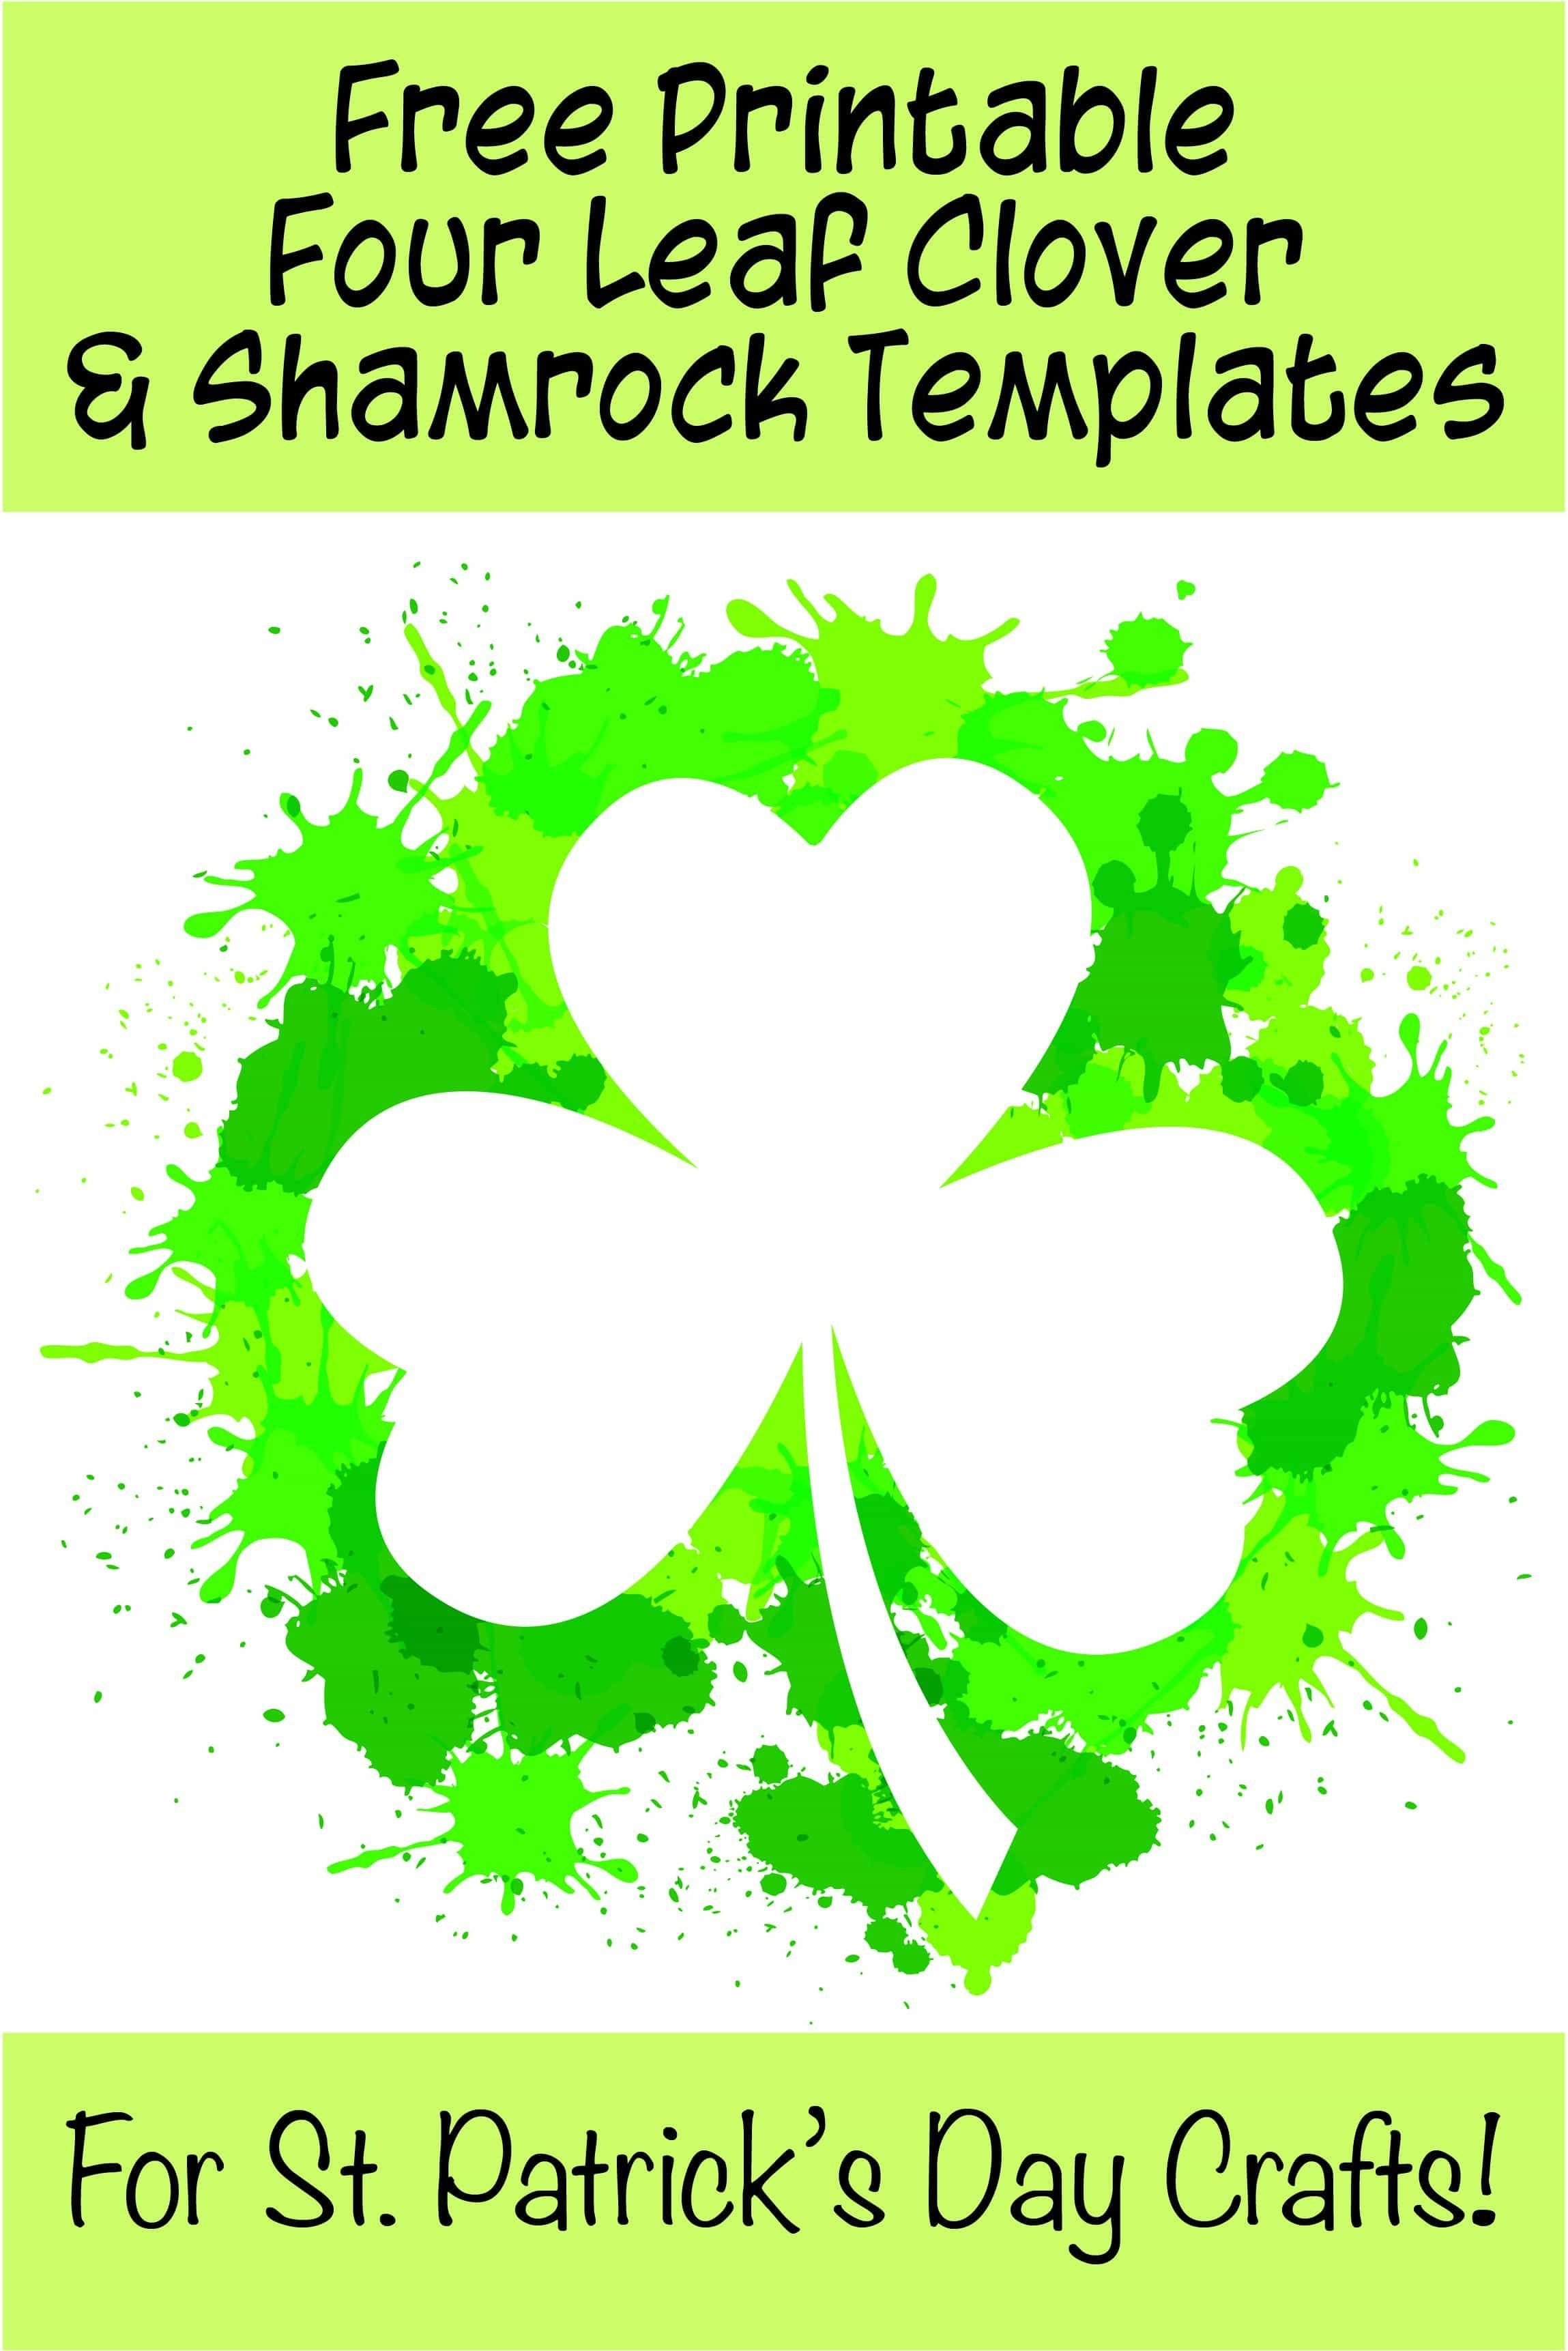 17+ Free Printable Four Leaf Clover & Shamrock Templates | Spring - Free Printable Shamrocks